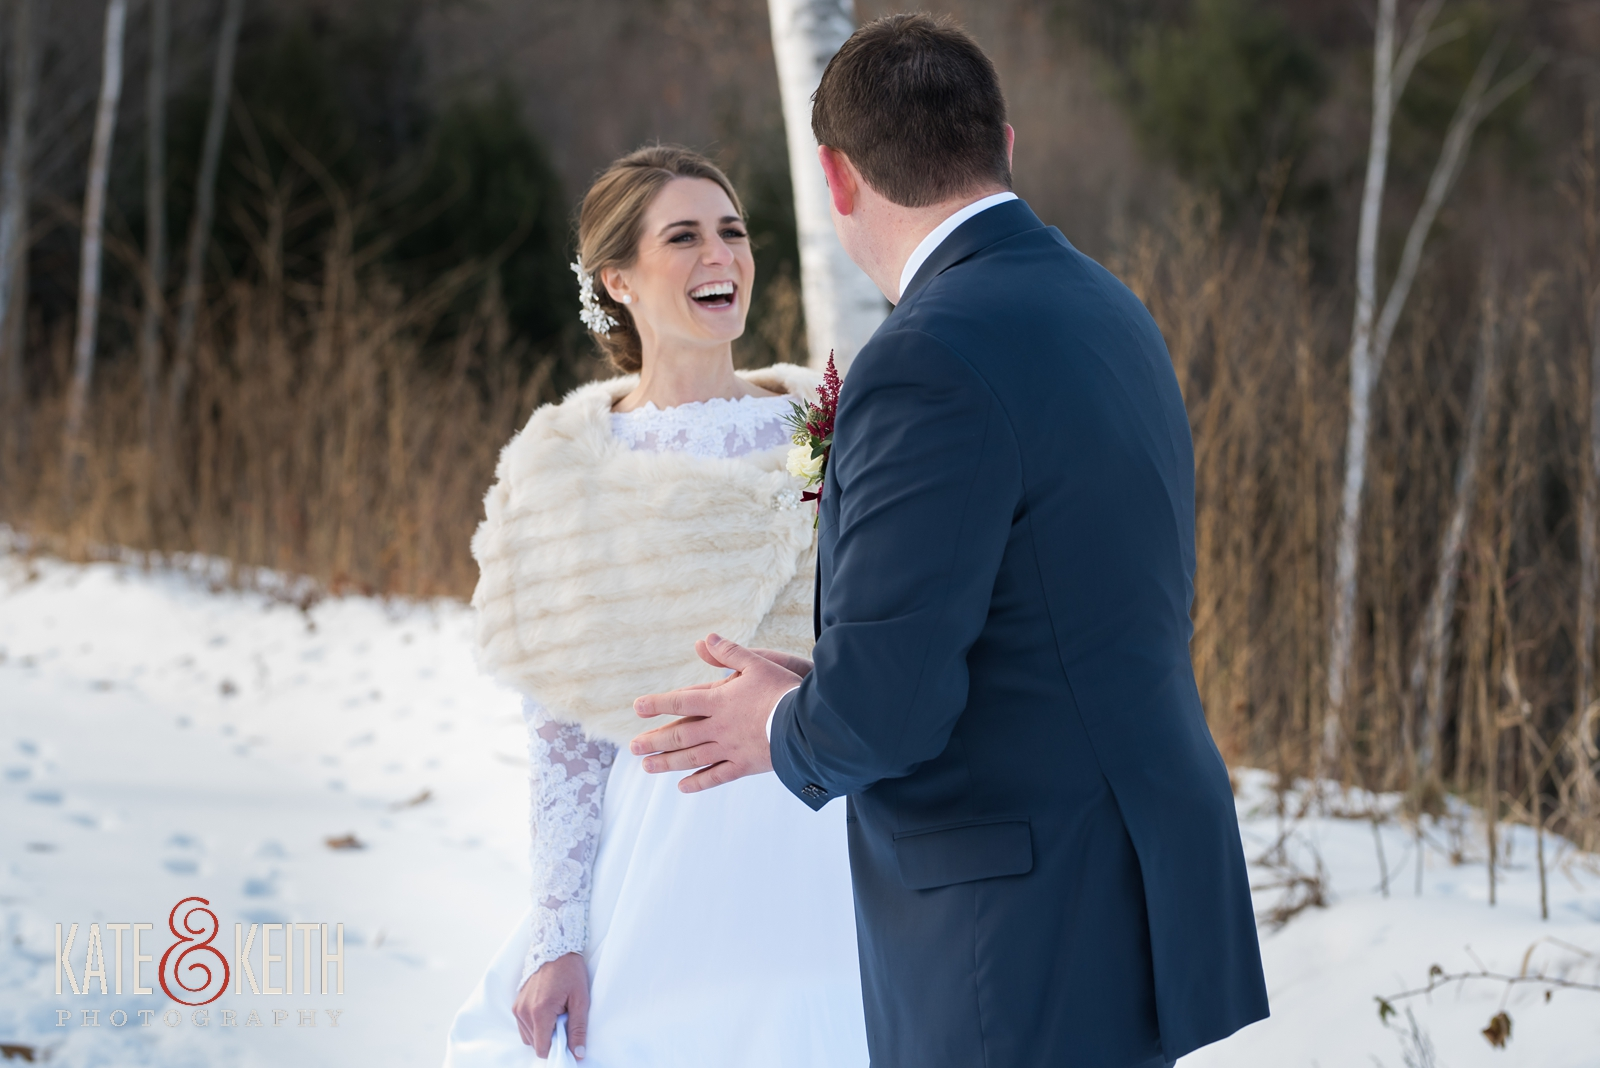 Barn on the Pemi, First look, wedding first look, snow, winter wedding, candid moment, fur wrap, winter wedding dress, long sleeved winter wedding dress, cold weather wedding, bride and groom first look laughing, Your Dreams Bridal shop, Men's Warehouse, Joseph Abud